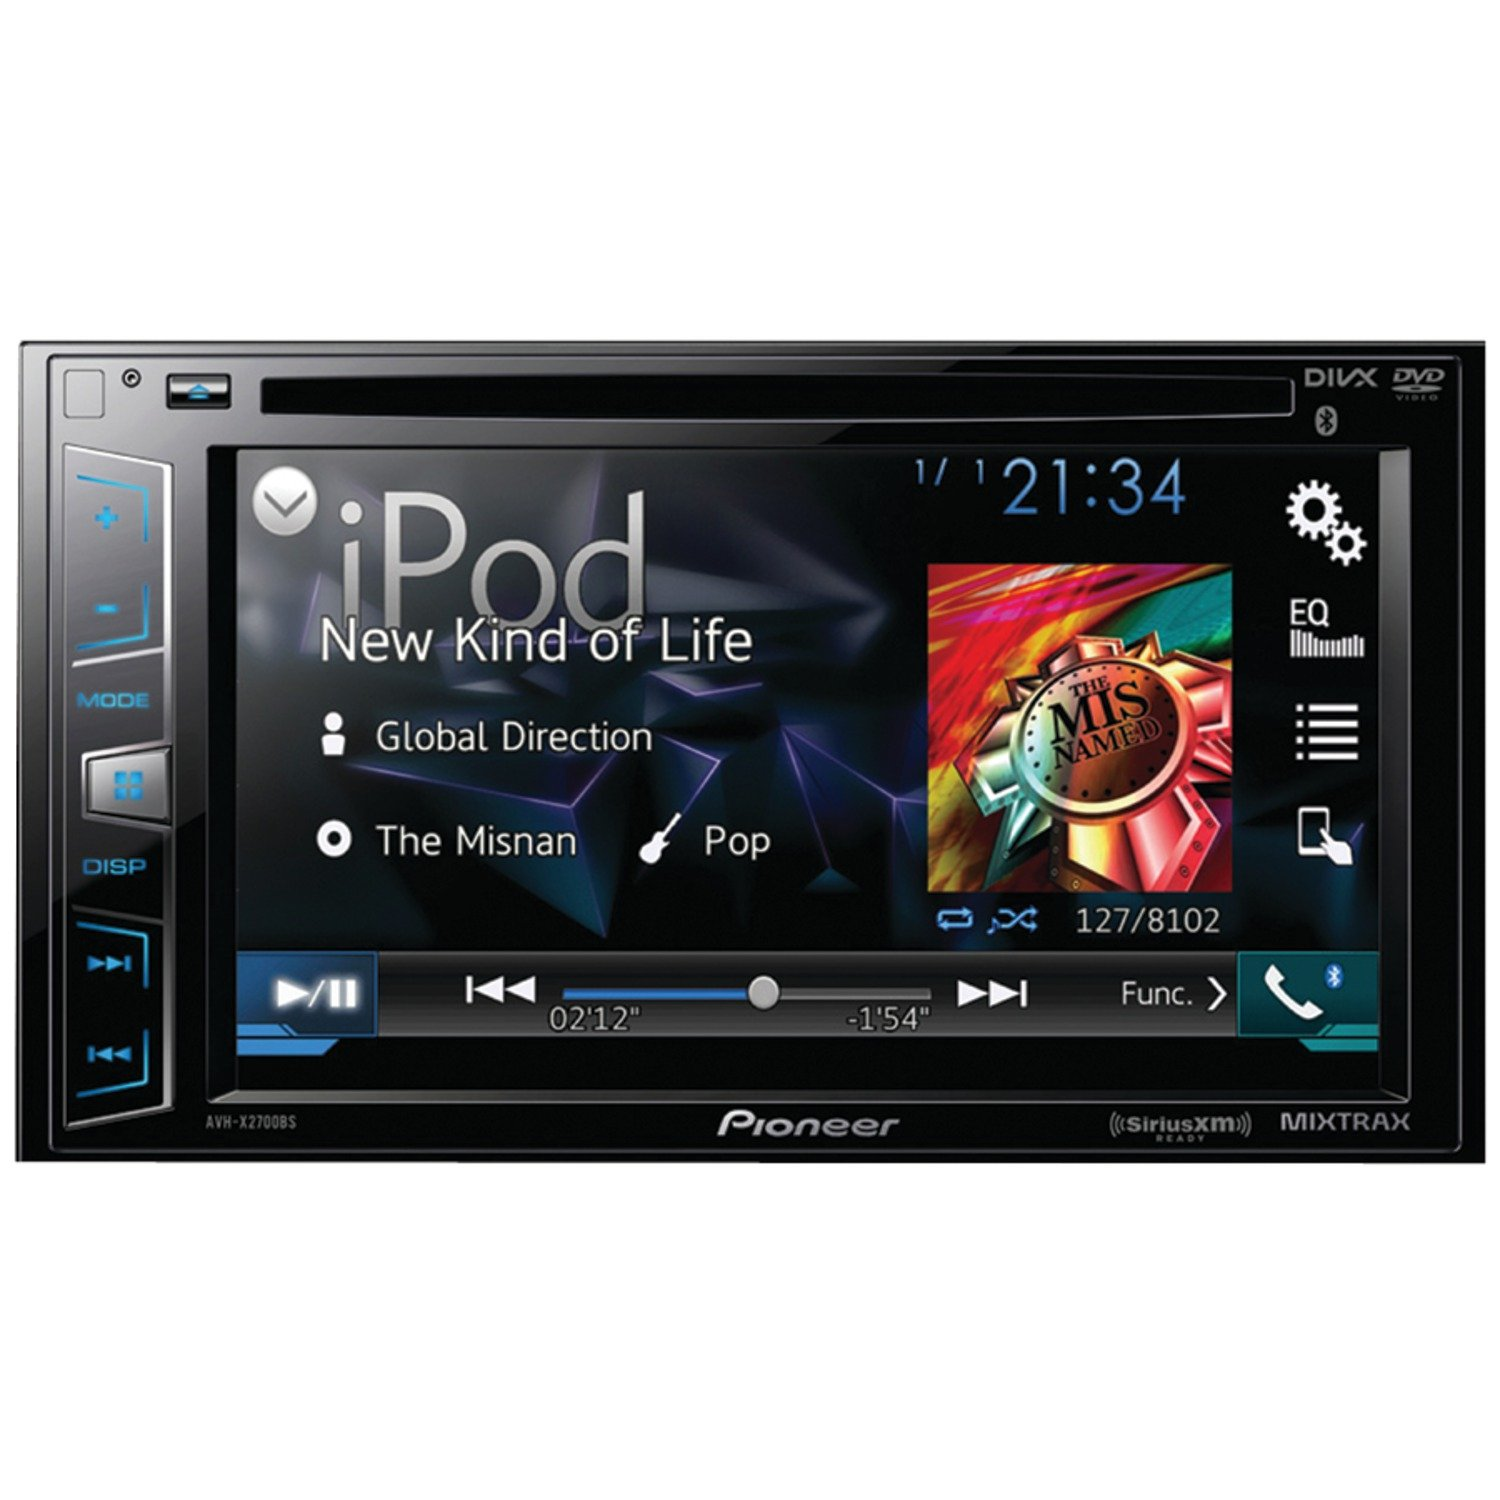 71IQPcOY7RL._SL1500_ amazon com pioneer avhx2700bs double din bluetooth sirius dvd  at gsmx.co